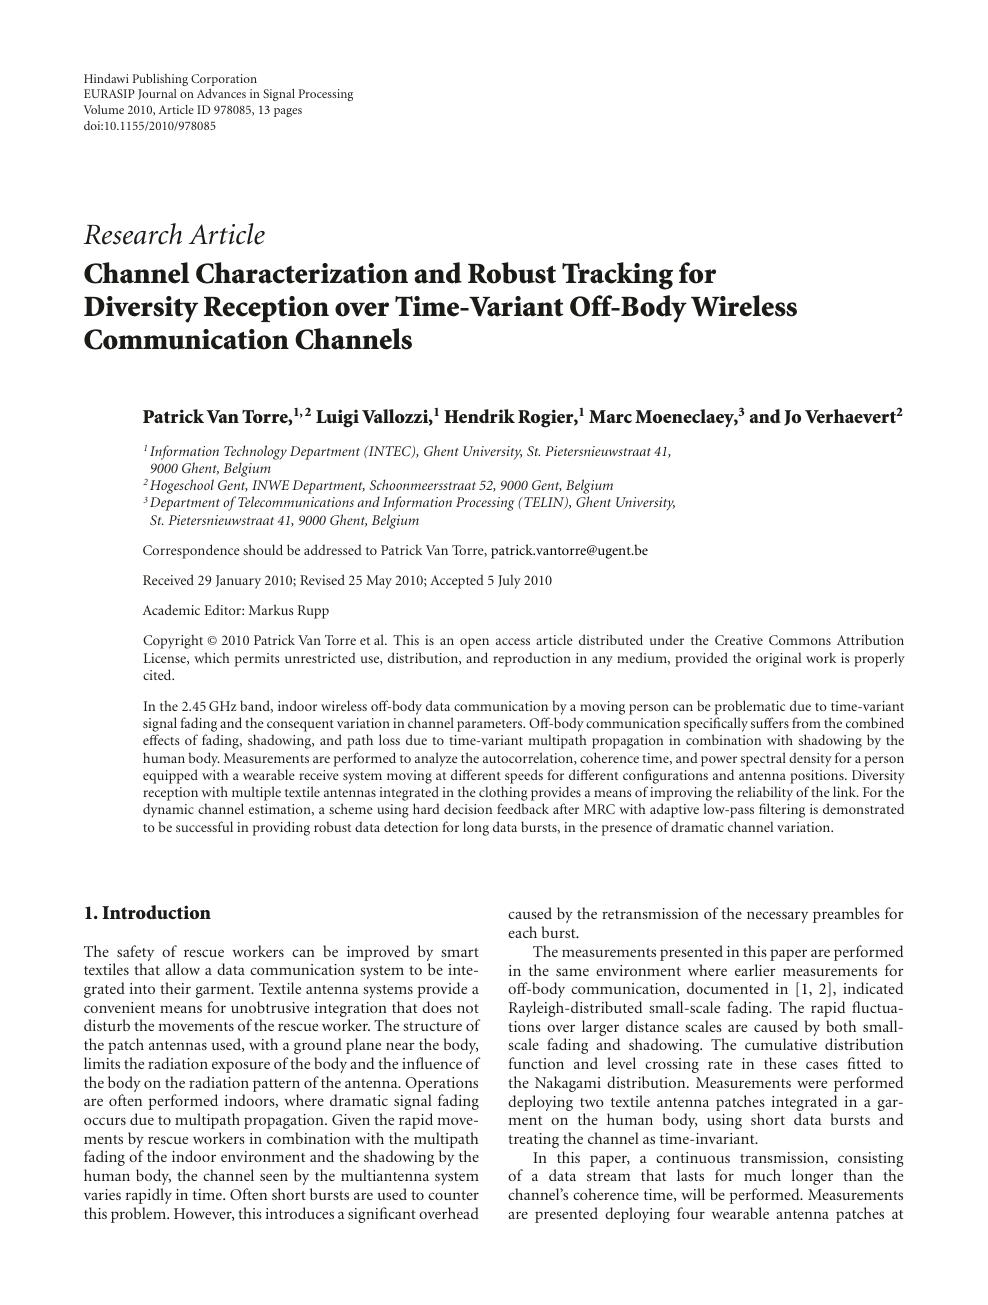 research paper on wireless communication